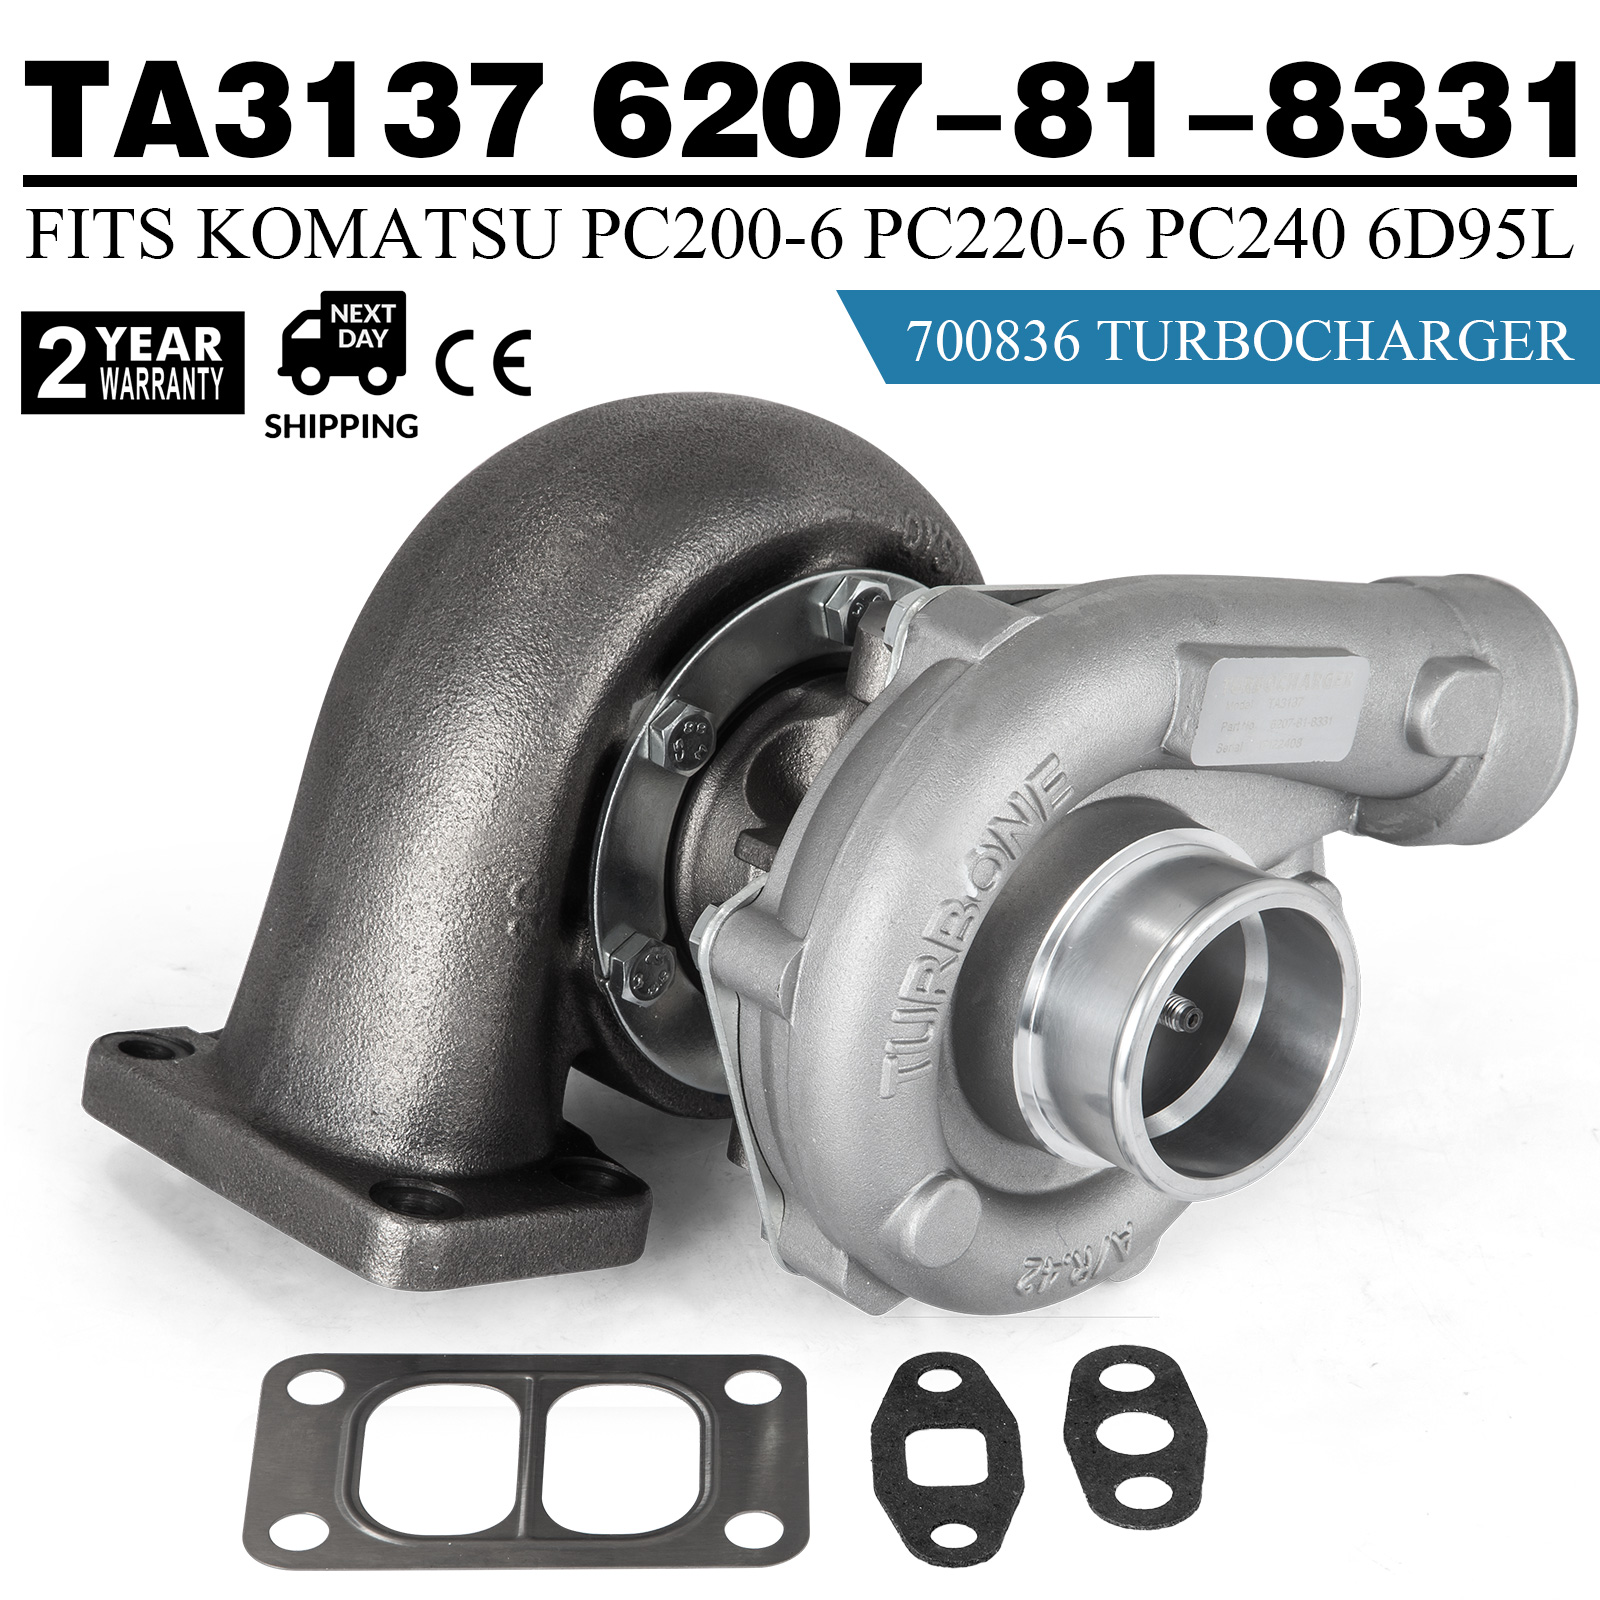 TT TURBO 6207-81-8331 For Komatsu PC200-6 Earth Moving with S6D95L Engine  Hot